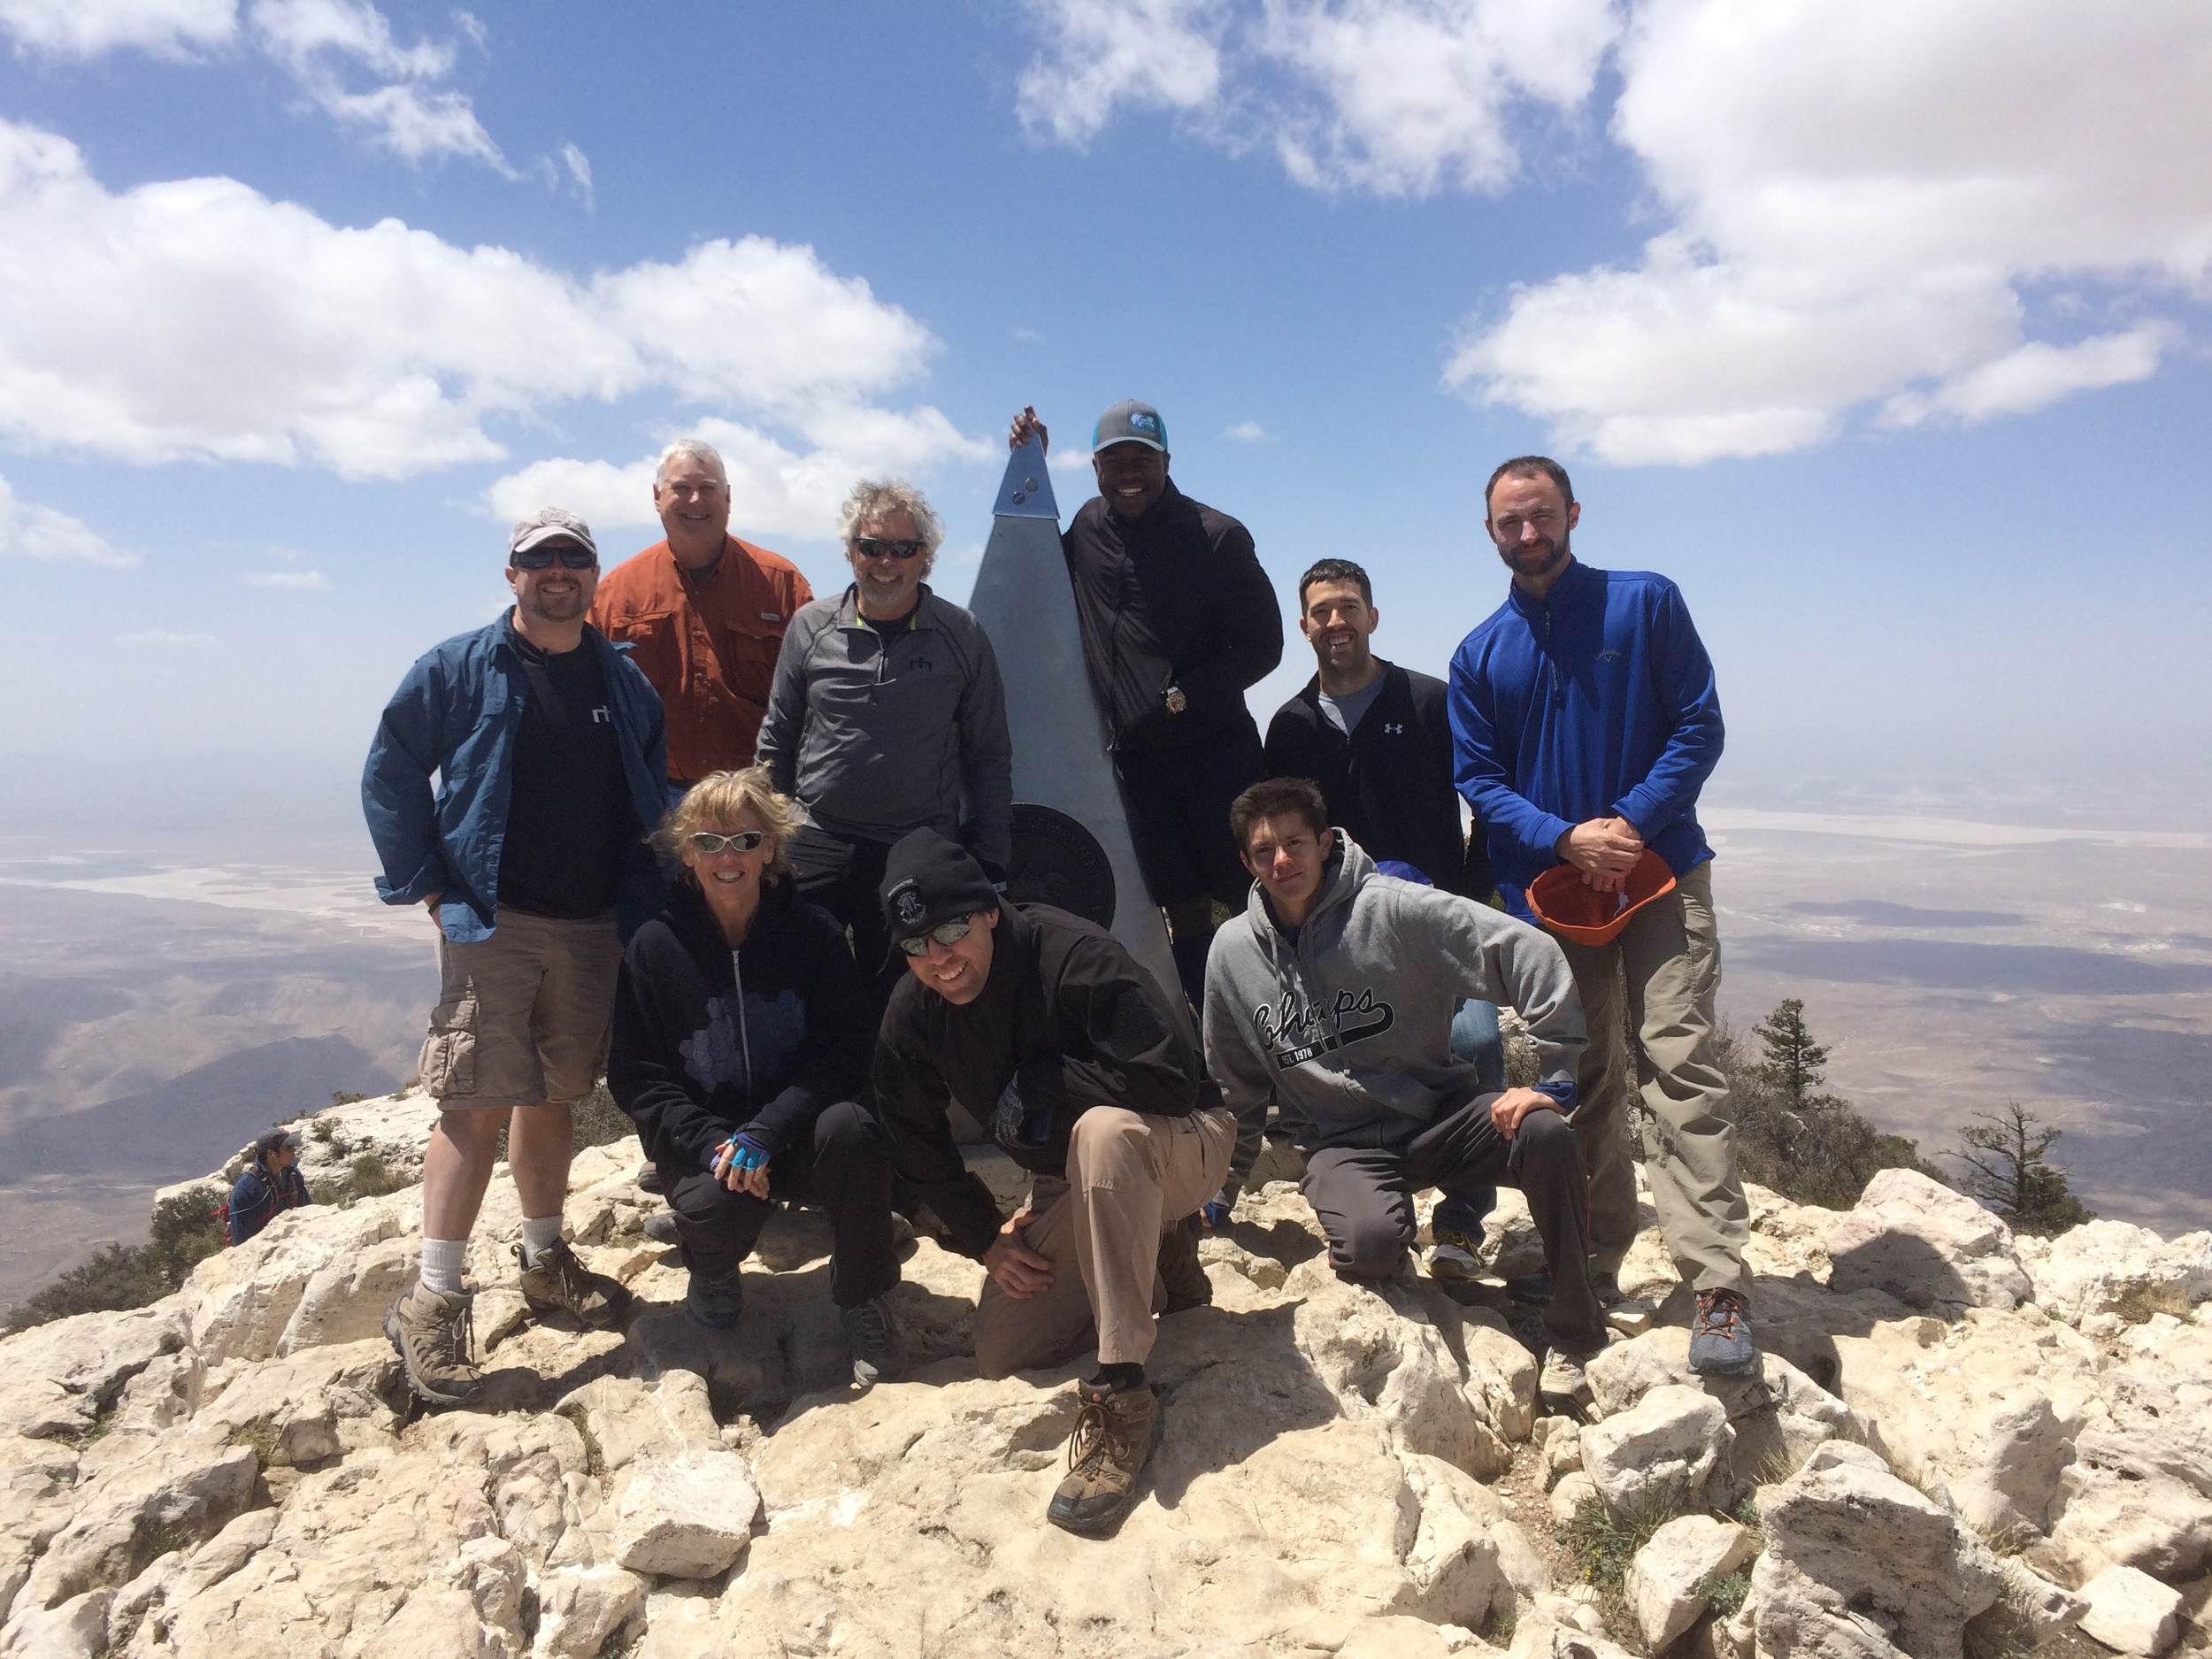 guadalupe peak Apr 2016